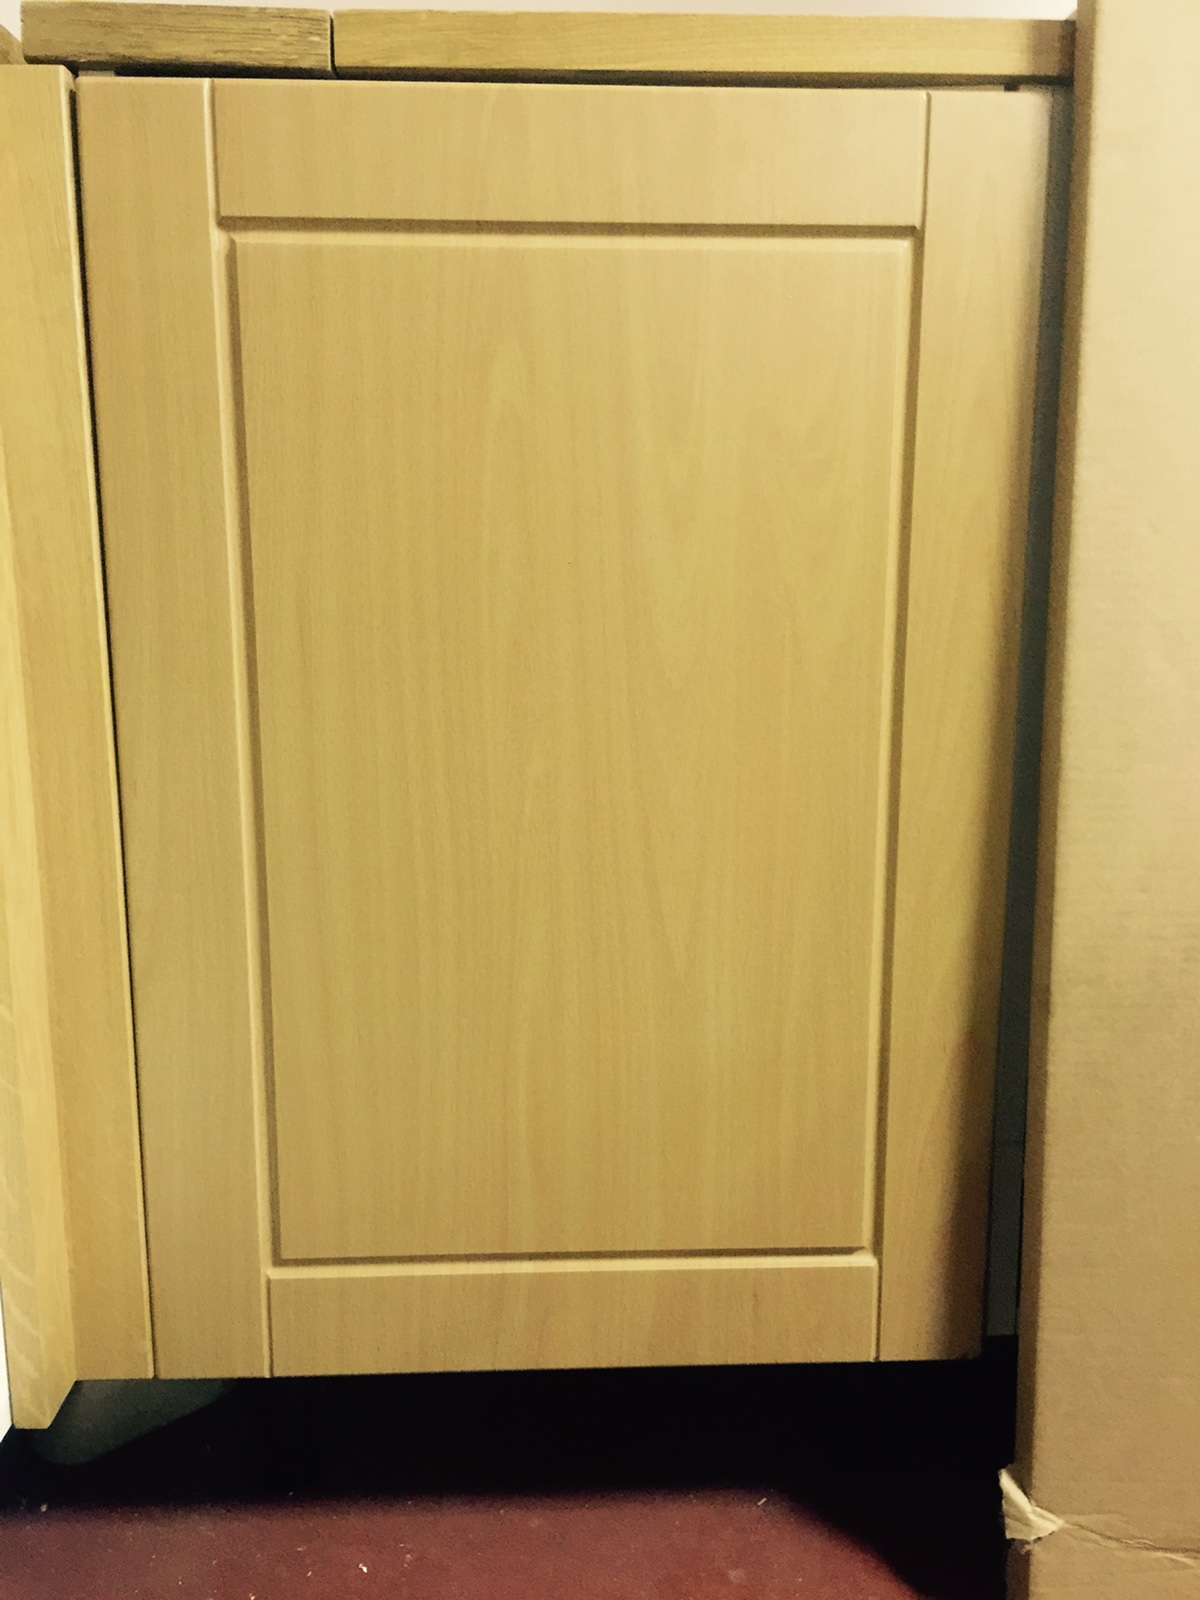 1c Hiline Corner Pack White Kitchen Cabinets With Light Oak Shaker Vynal Wrap Doors With Blum